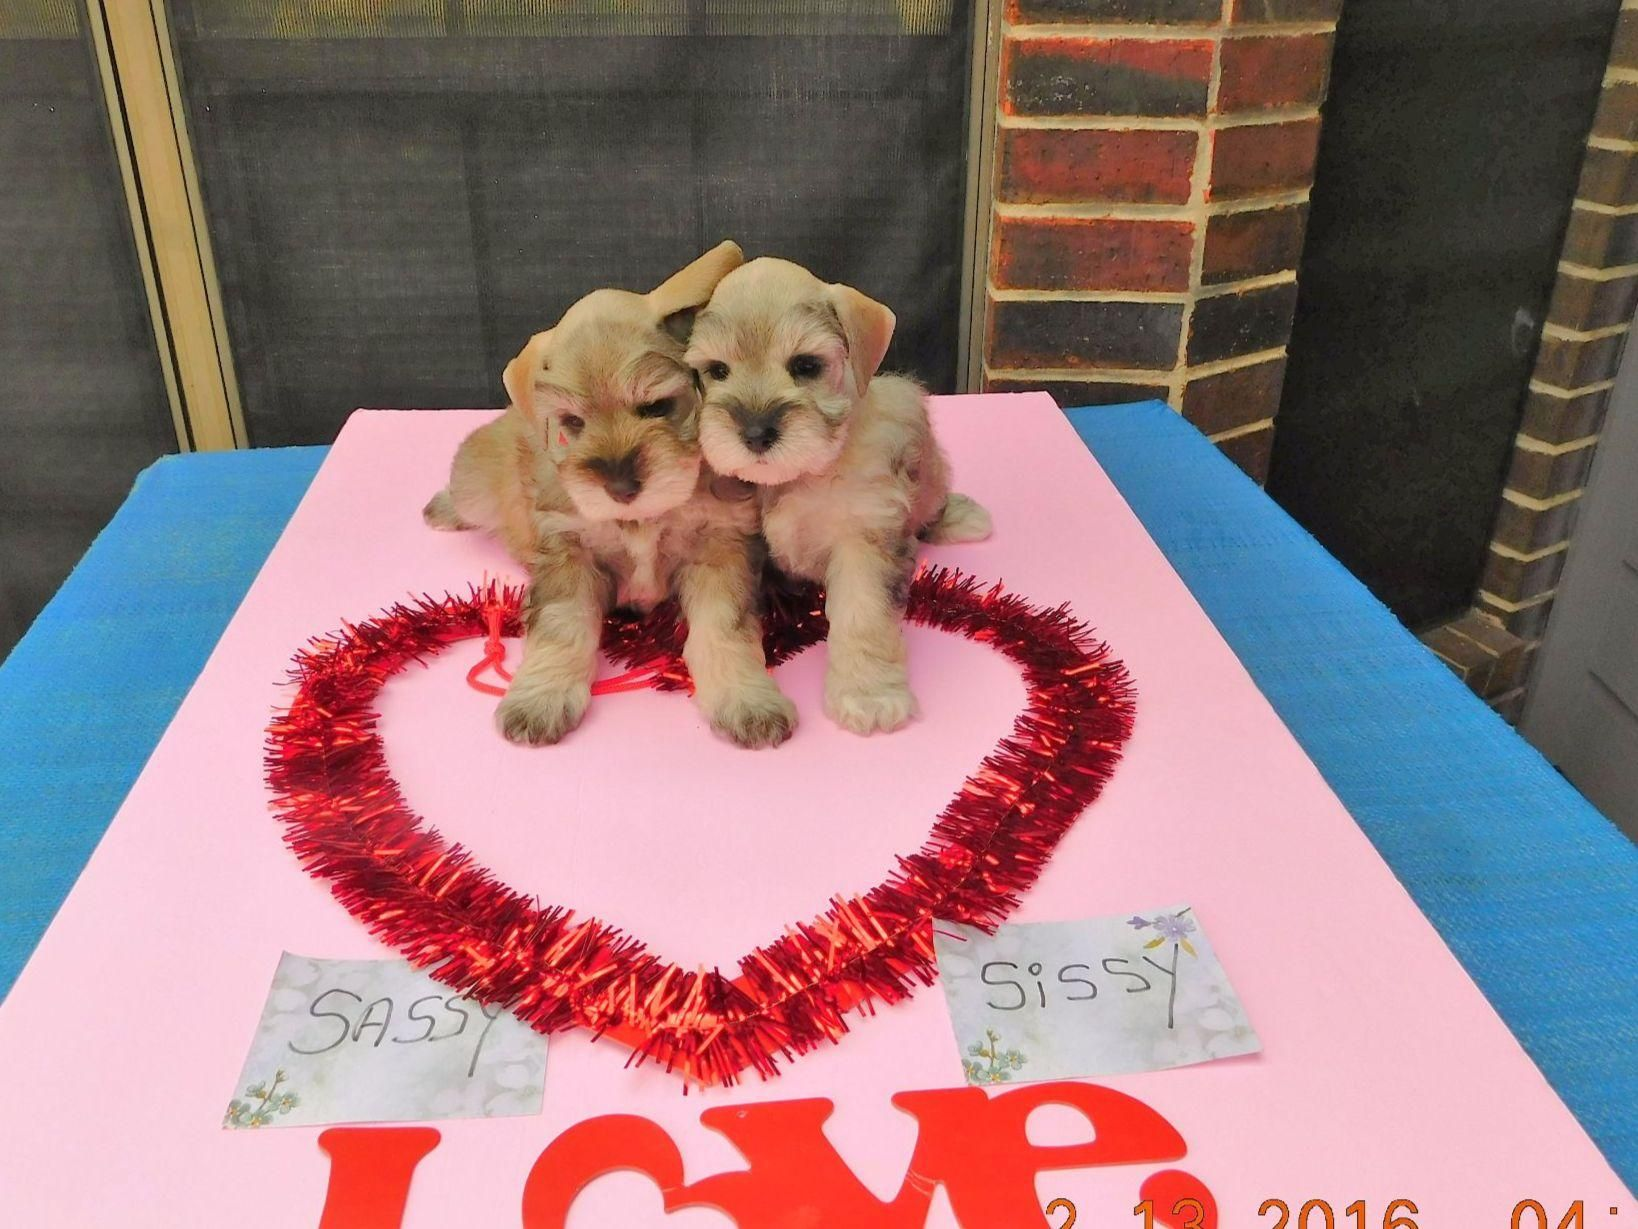 W W Baxter In College Station Tx On American Kennel Club Marketplace Dog Breeder Baxter Dog Puppies For Sale